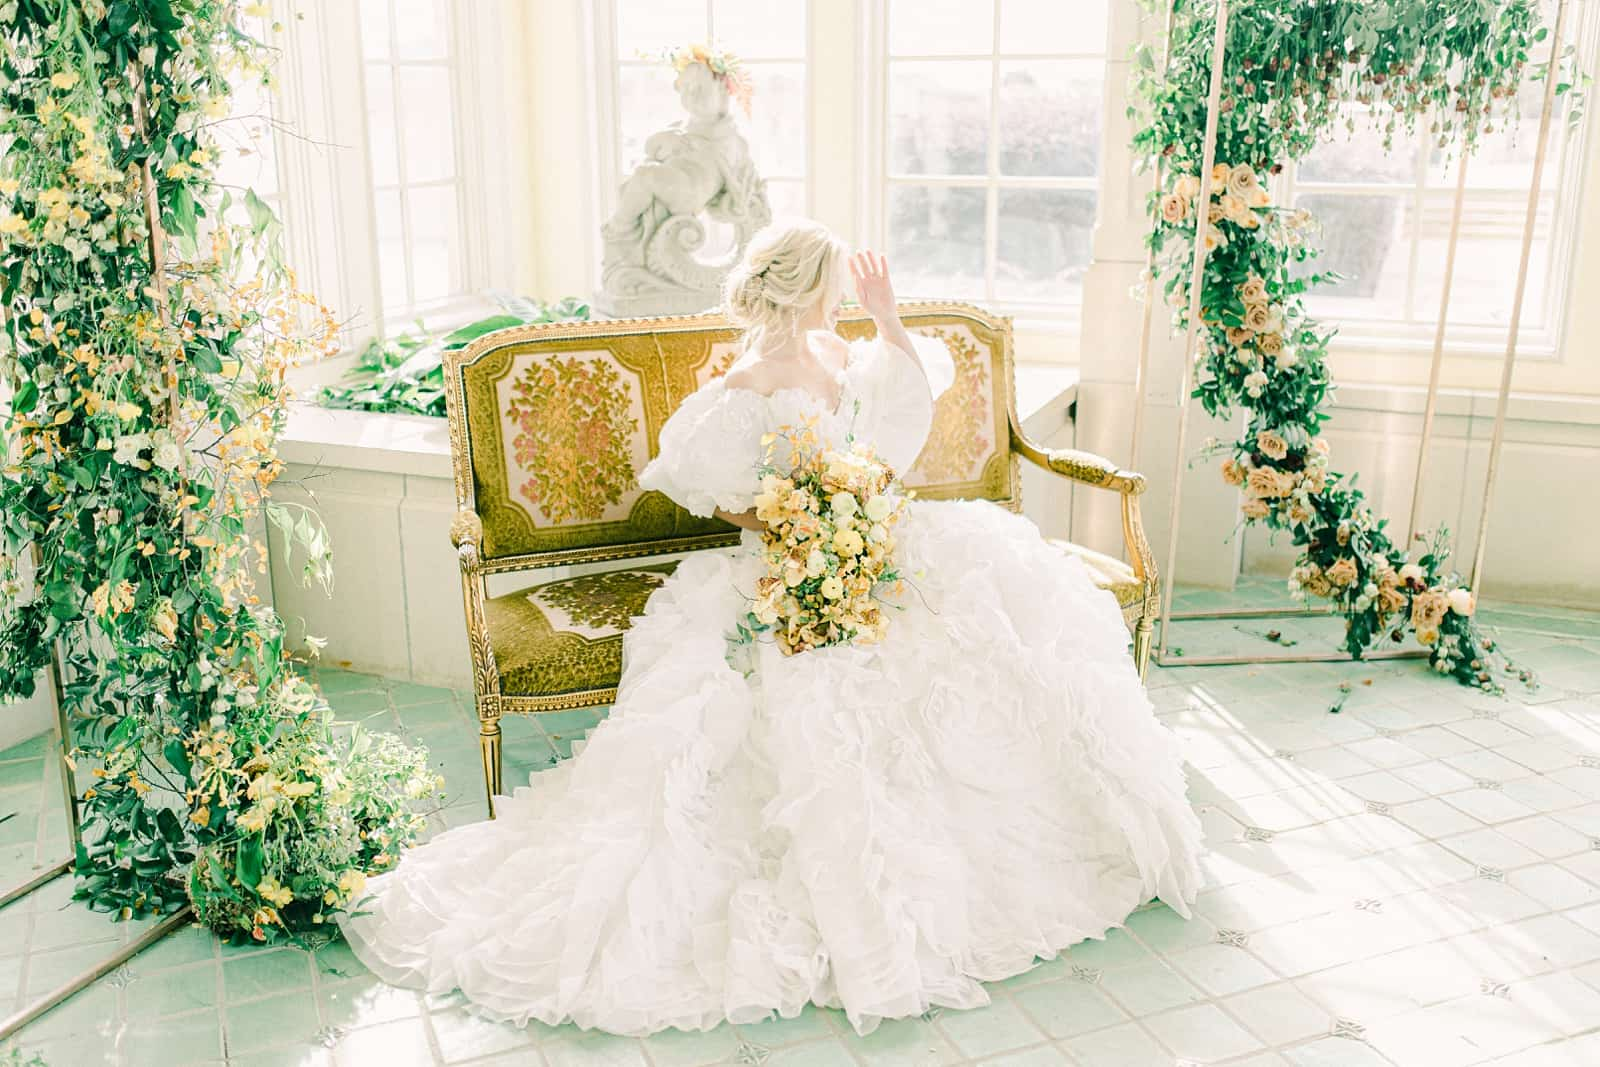 Bride in ball gown sitting on French inspired bench on wedding day